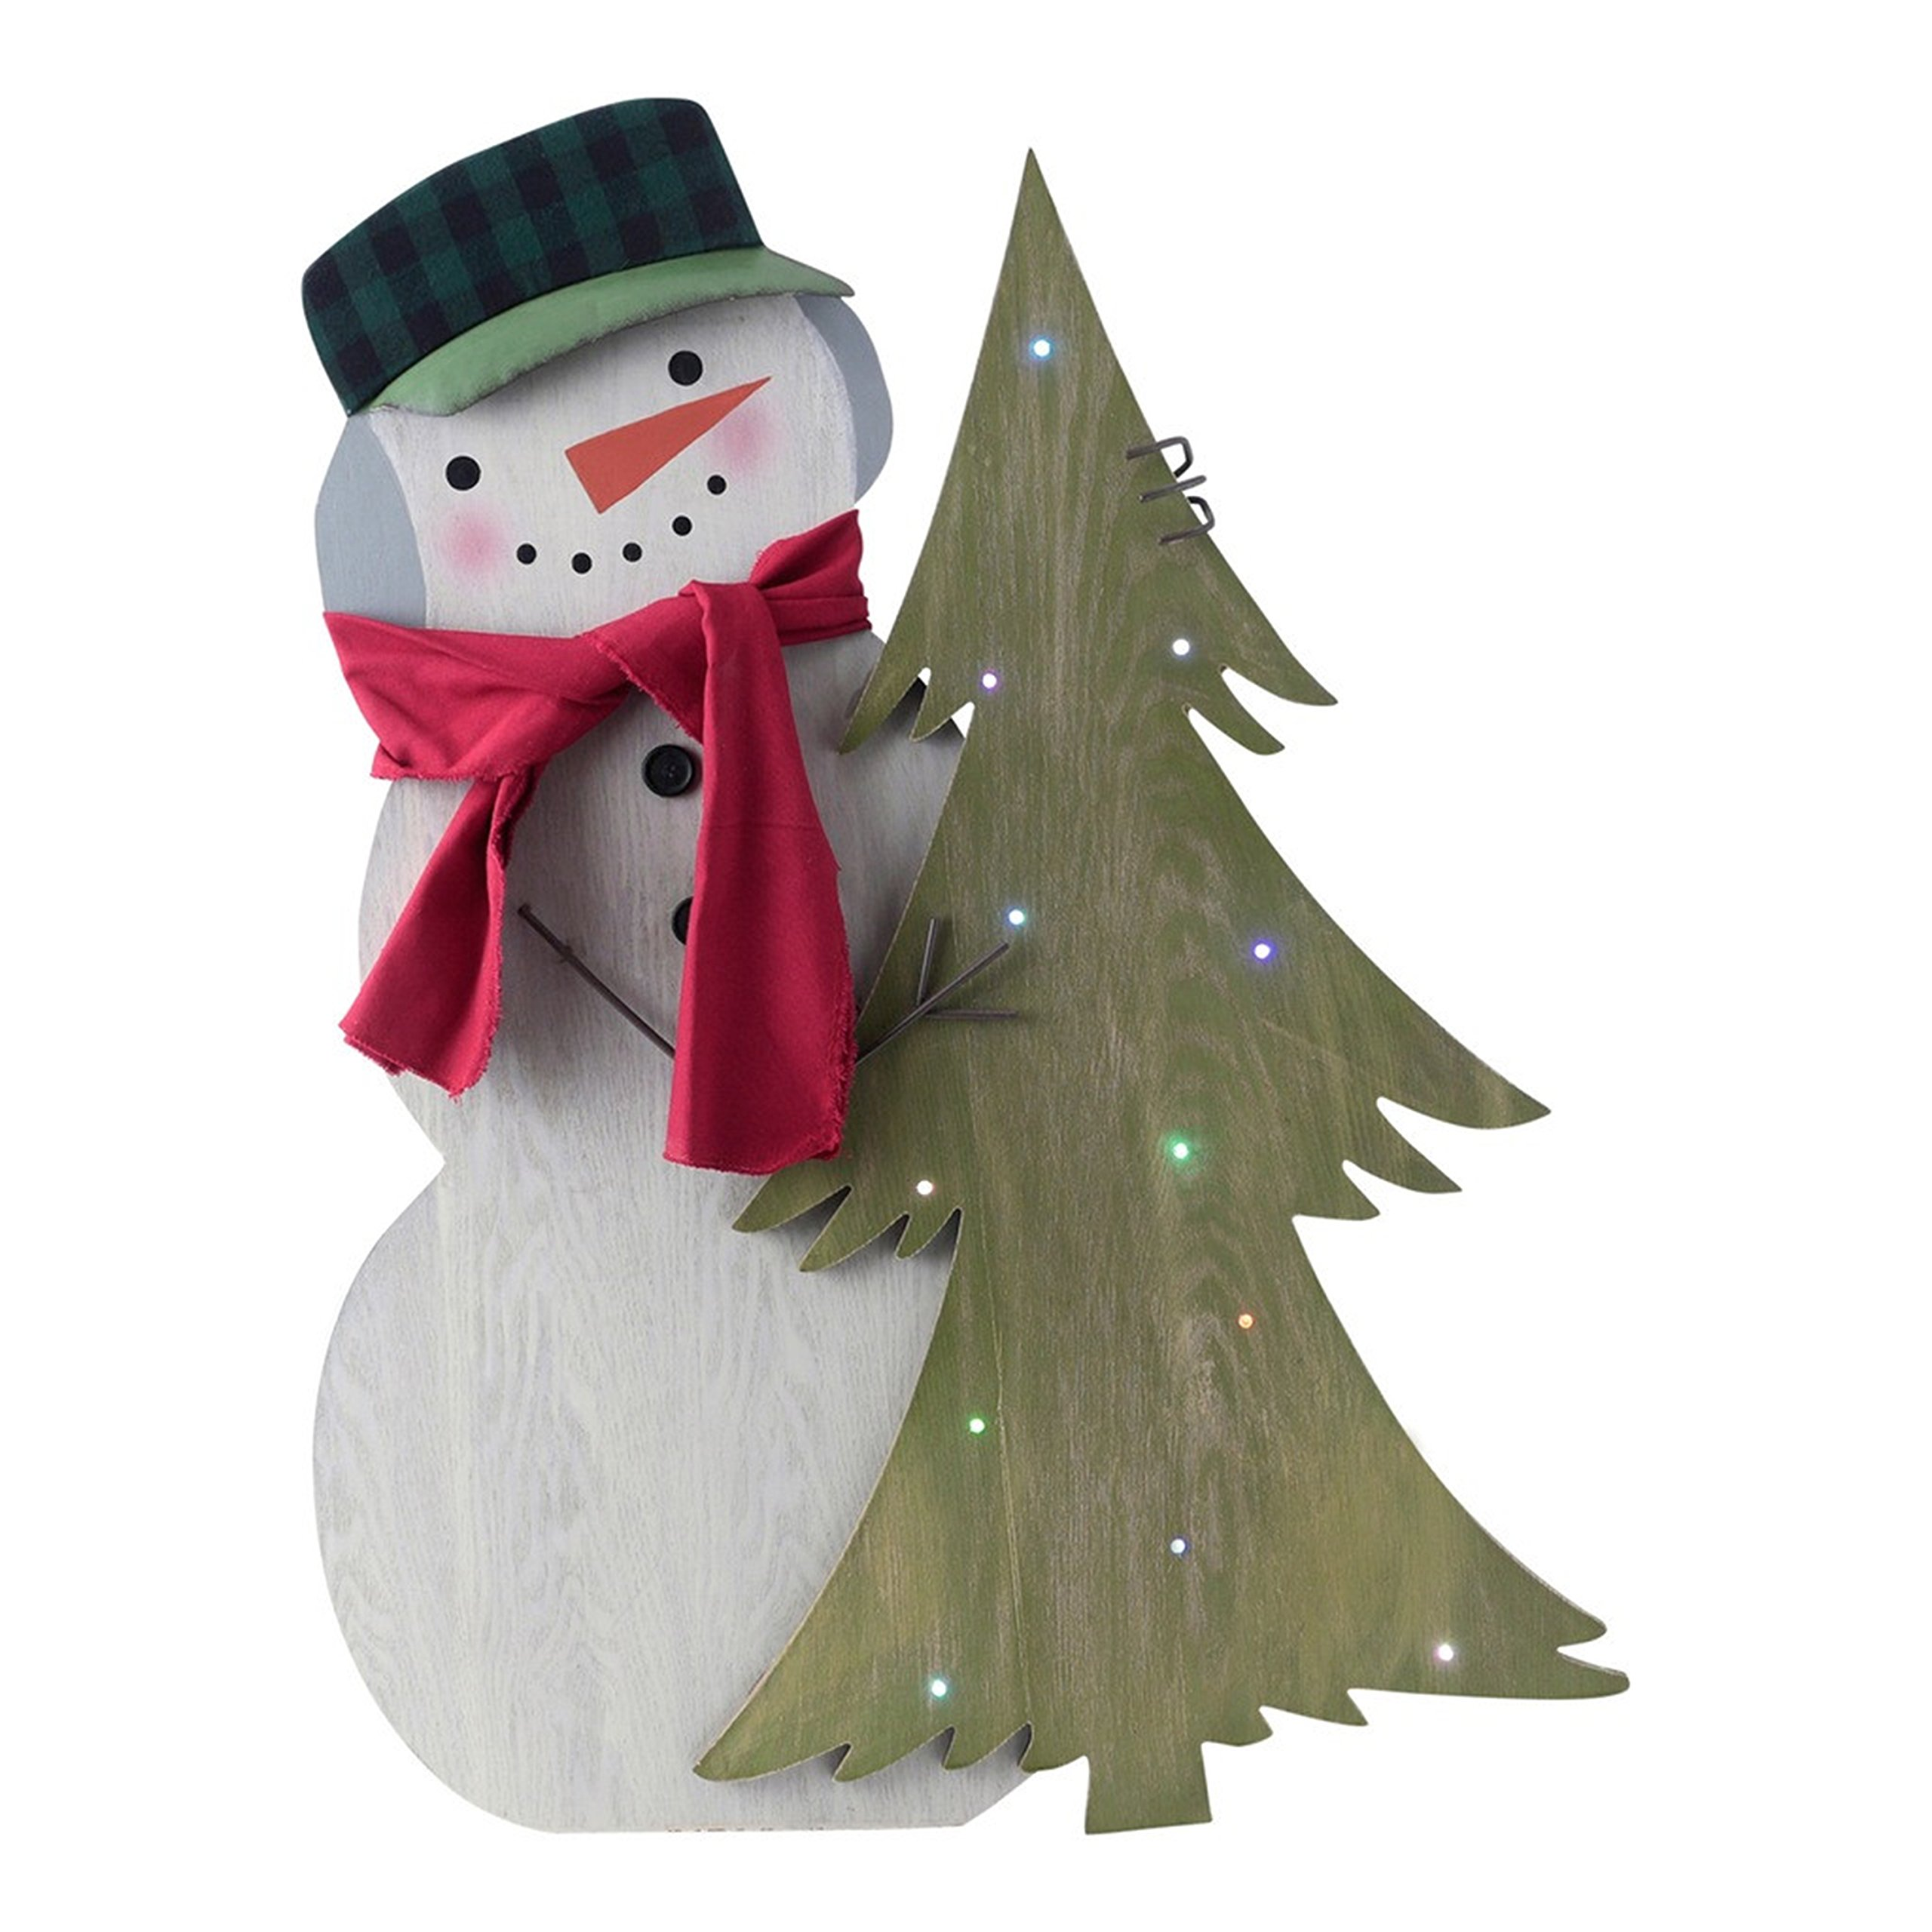 Hallmark Home Lightup Indoor/Outdoor Standing Snowman Decor with Hat and Scarf